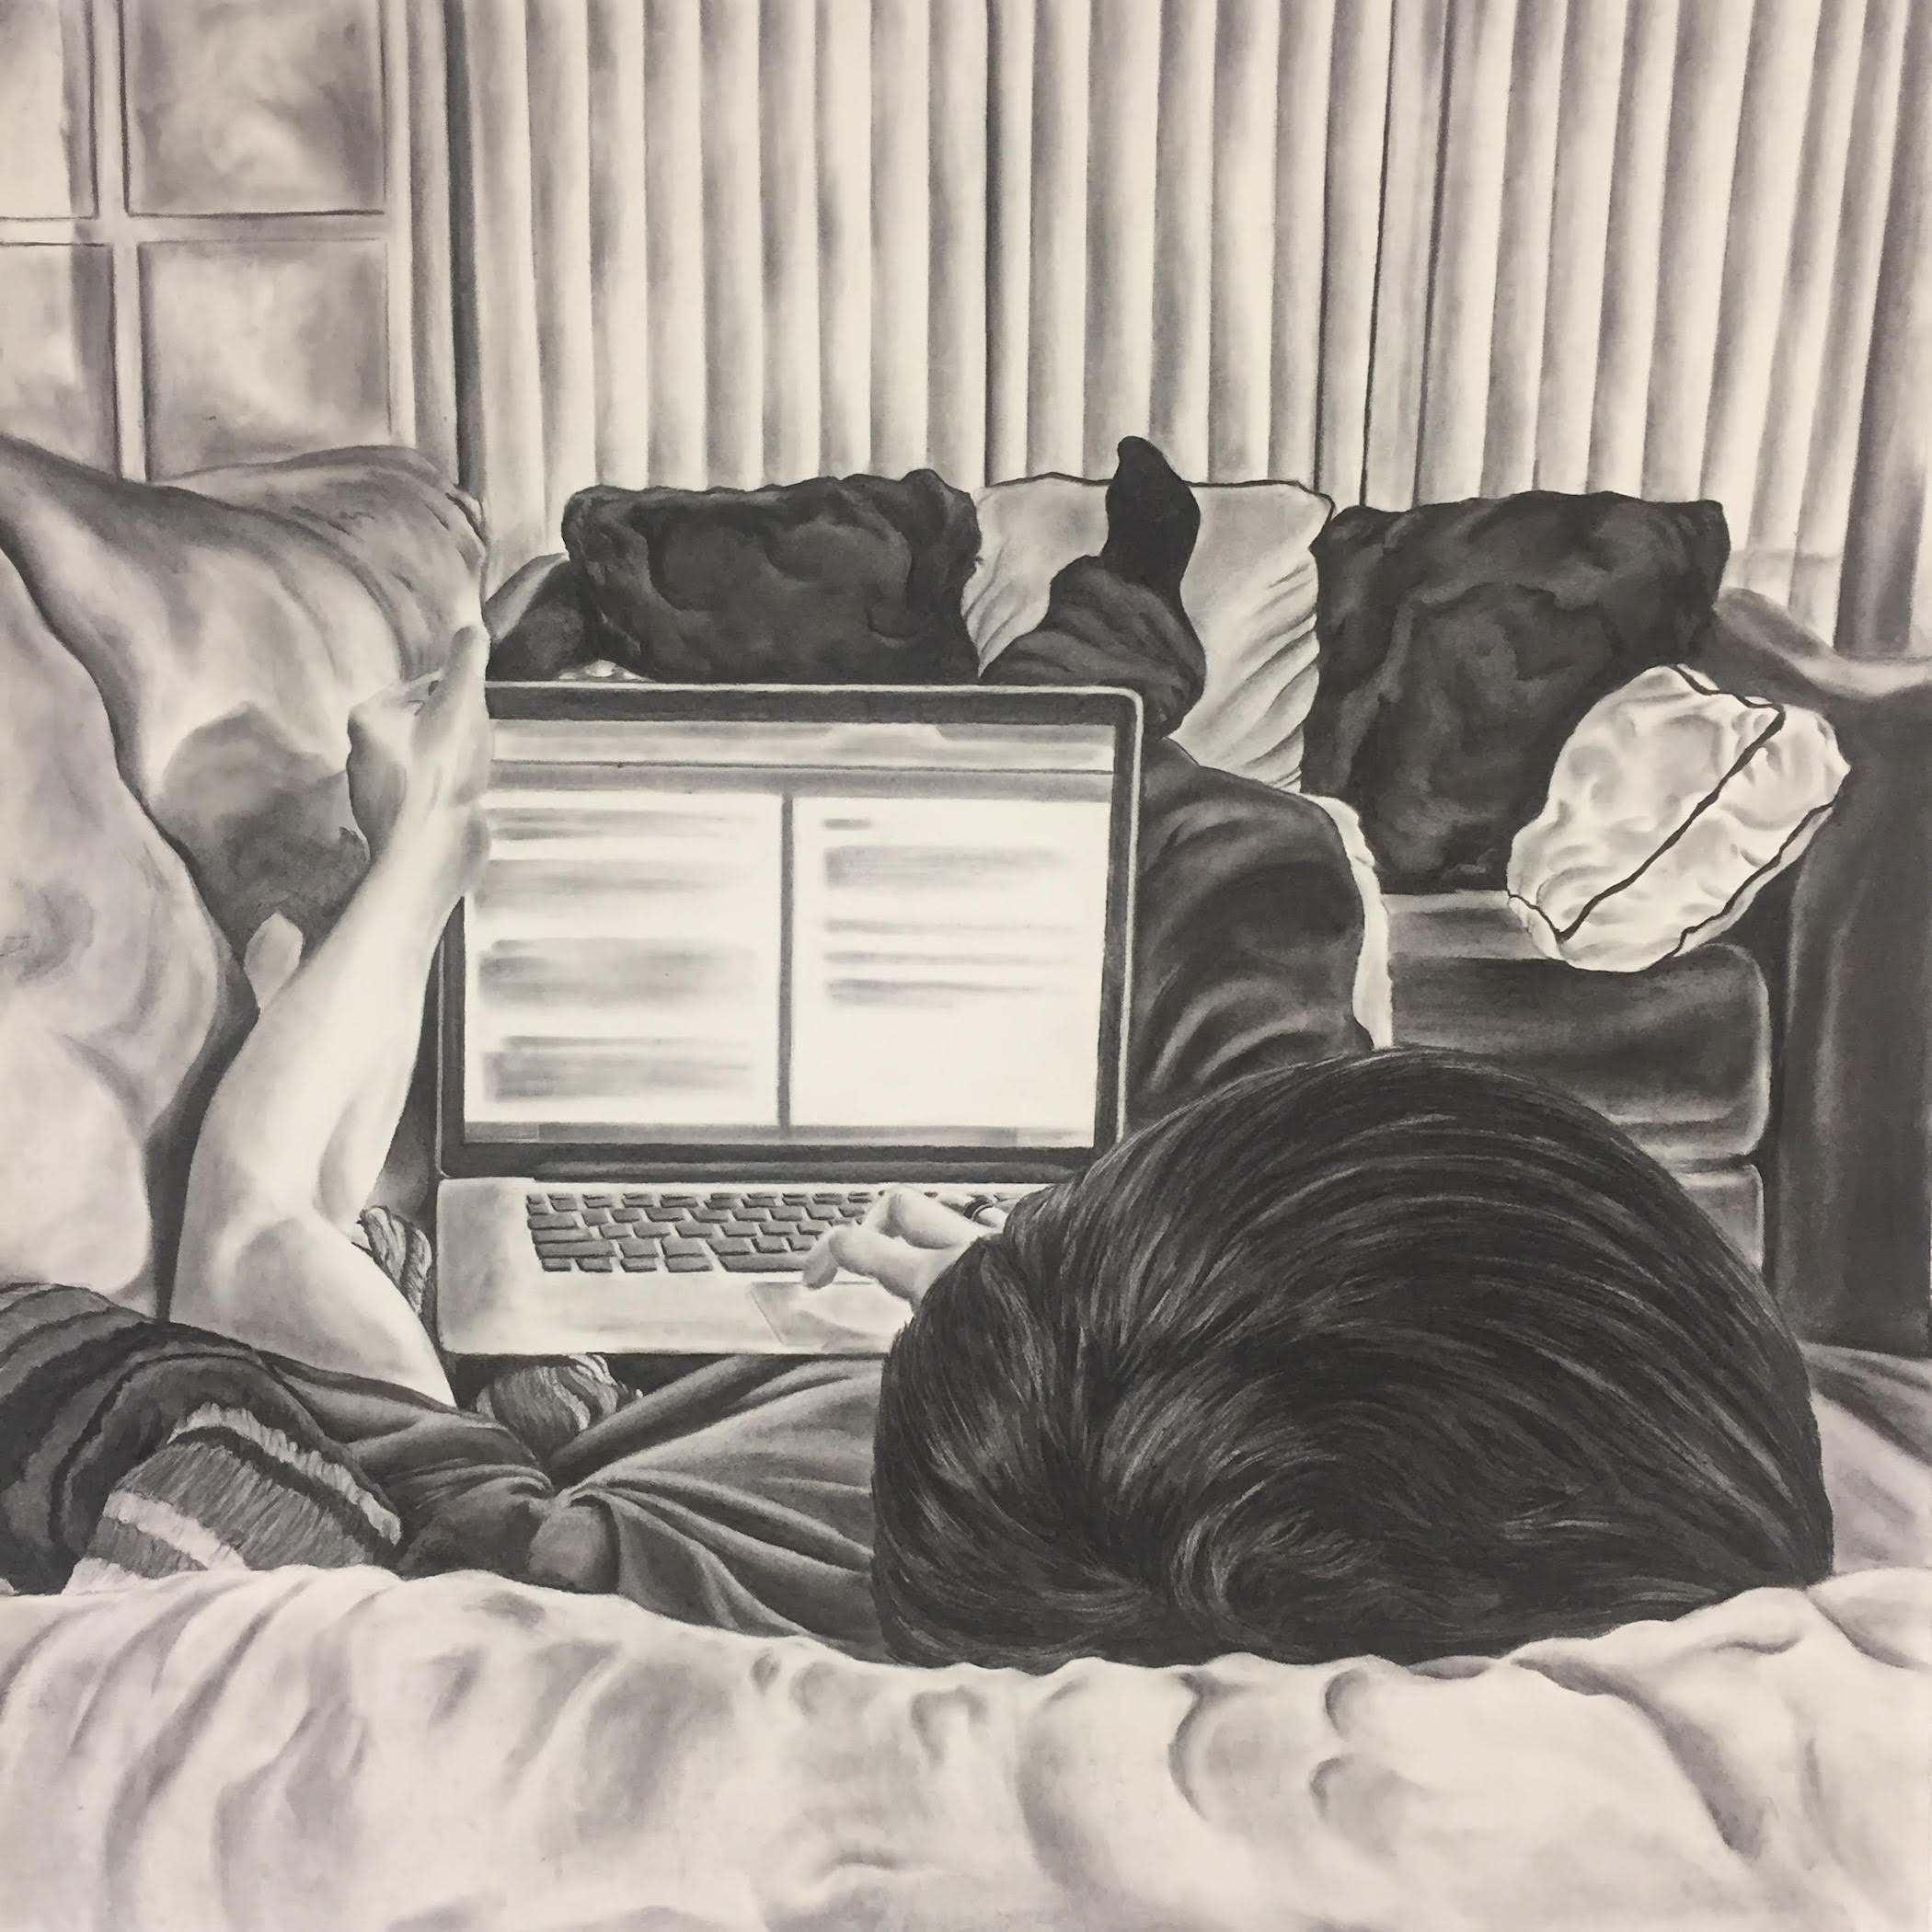 El Chico del Apartamento 202, 2019, charcoal on paper, 36 x 36""